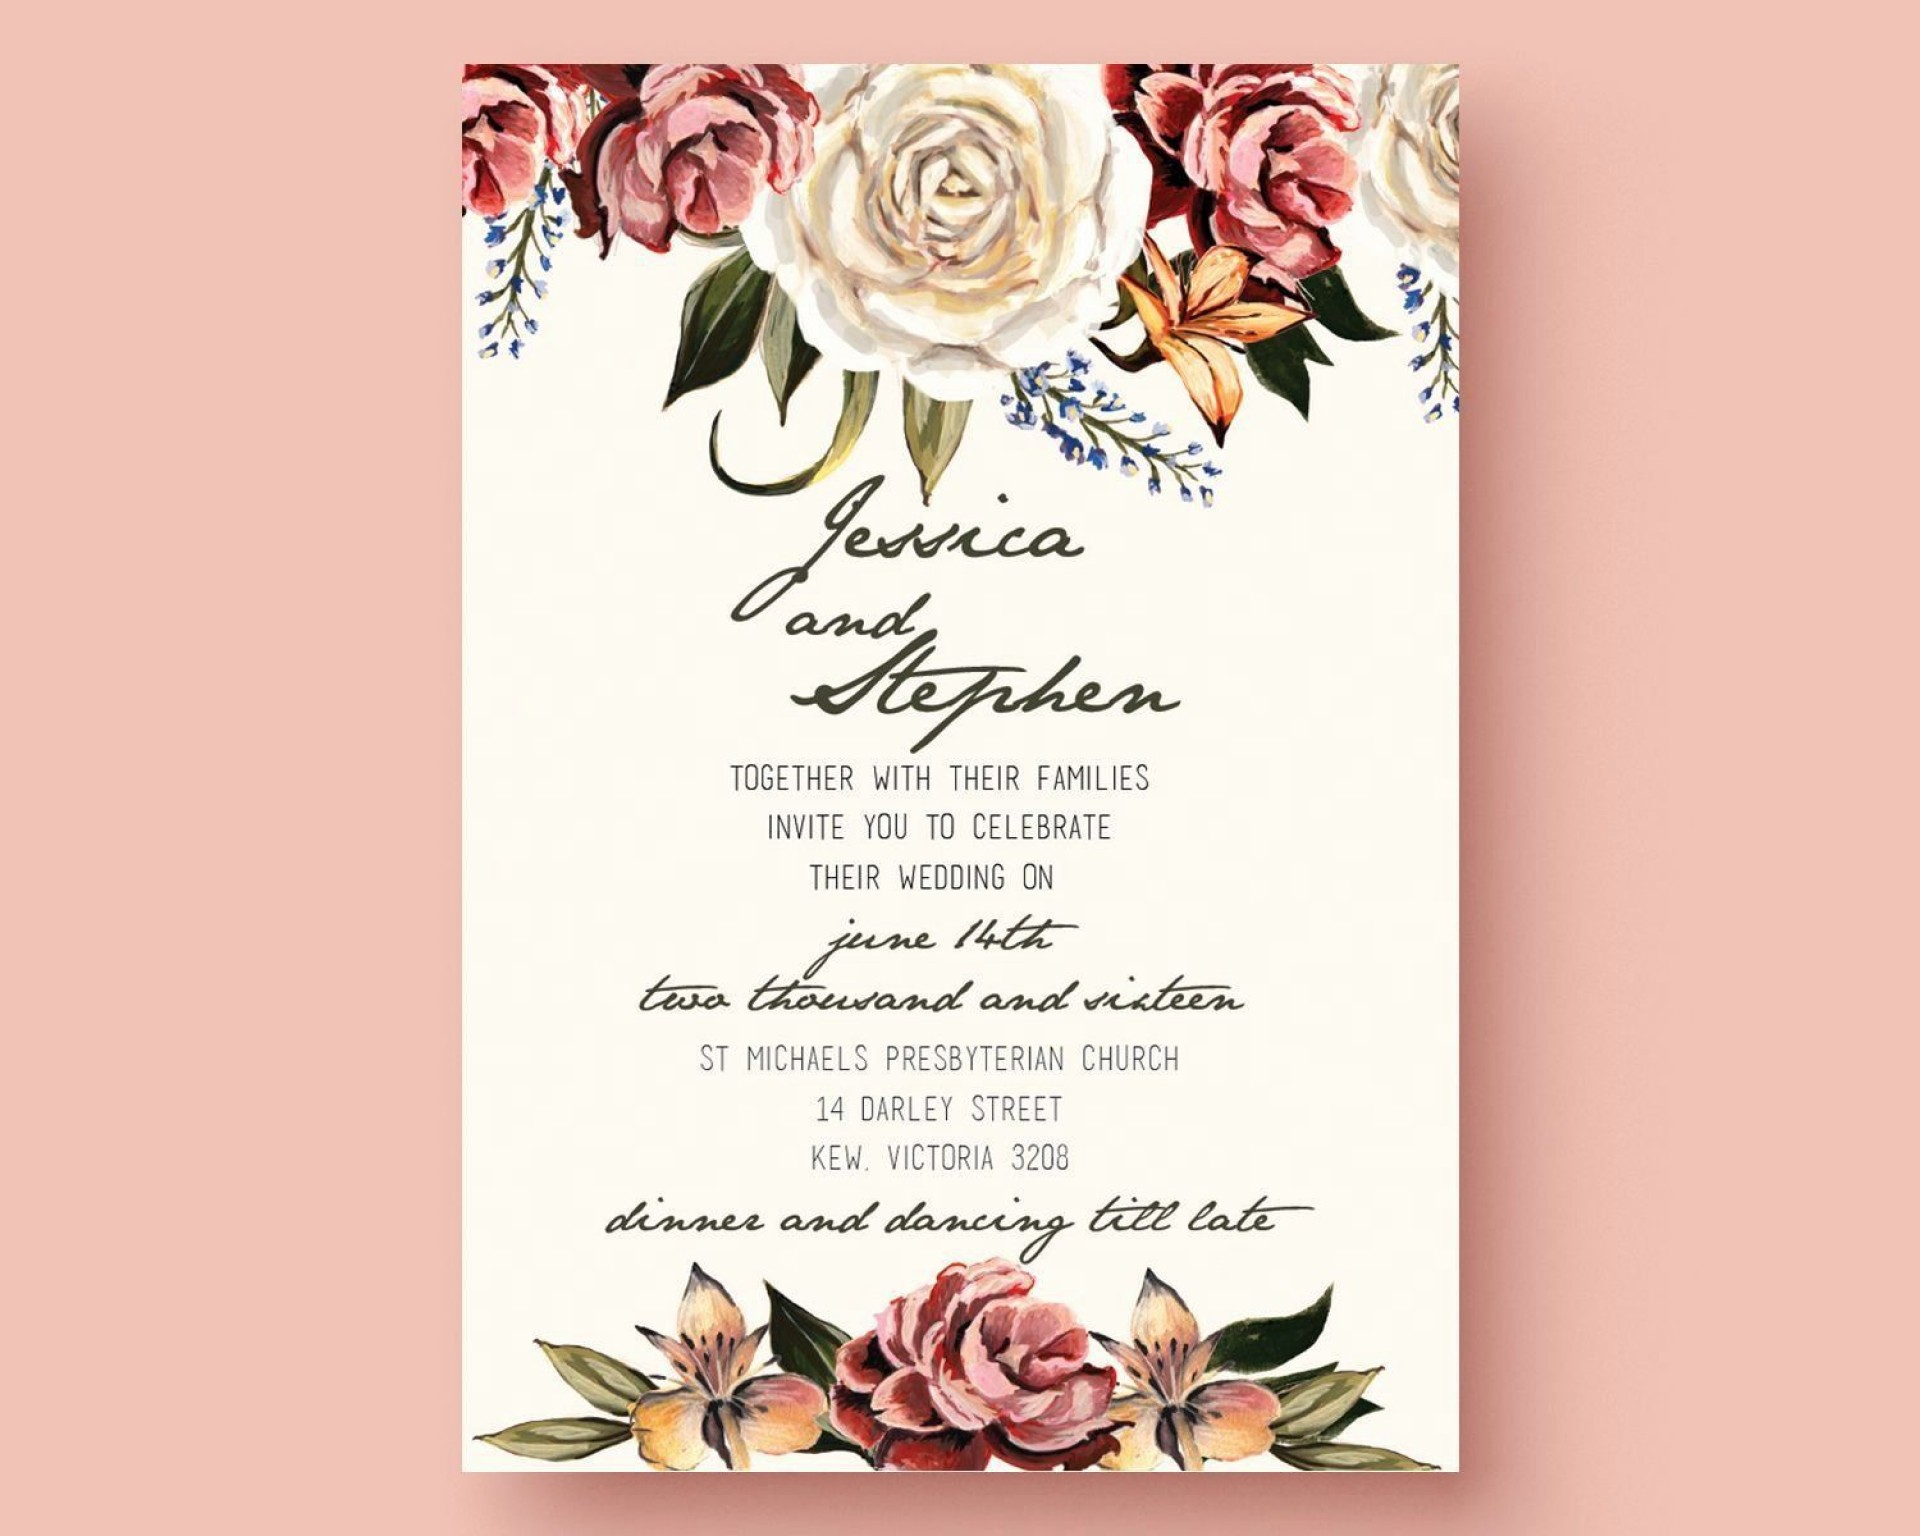 000 Magnificent Free Download Invitation Card Template Highest Quality  Templates Indian Wedding Design Software Png1920